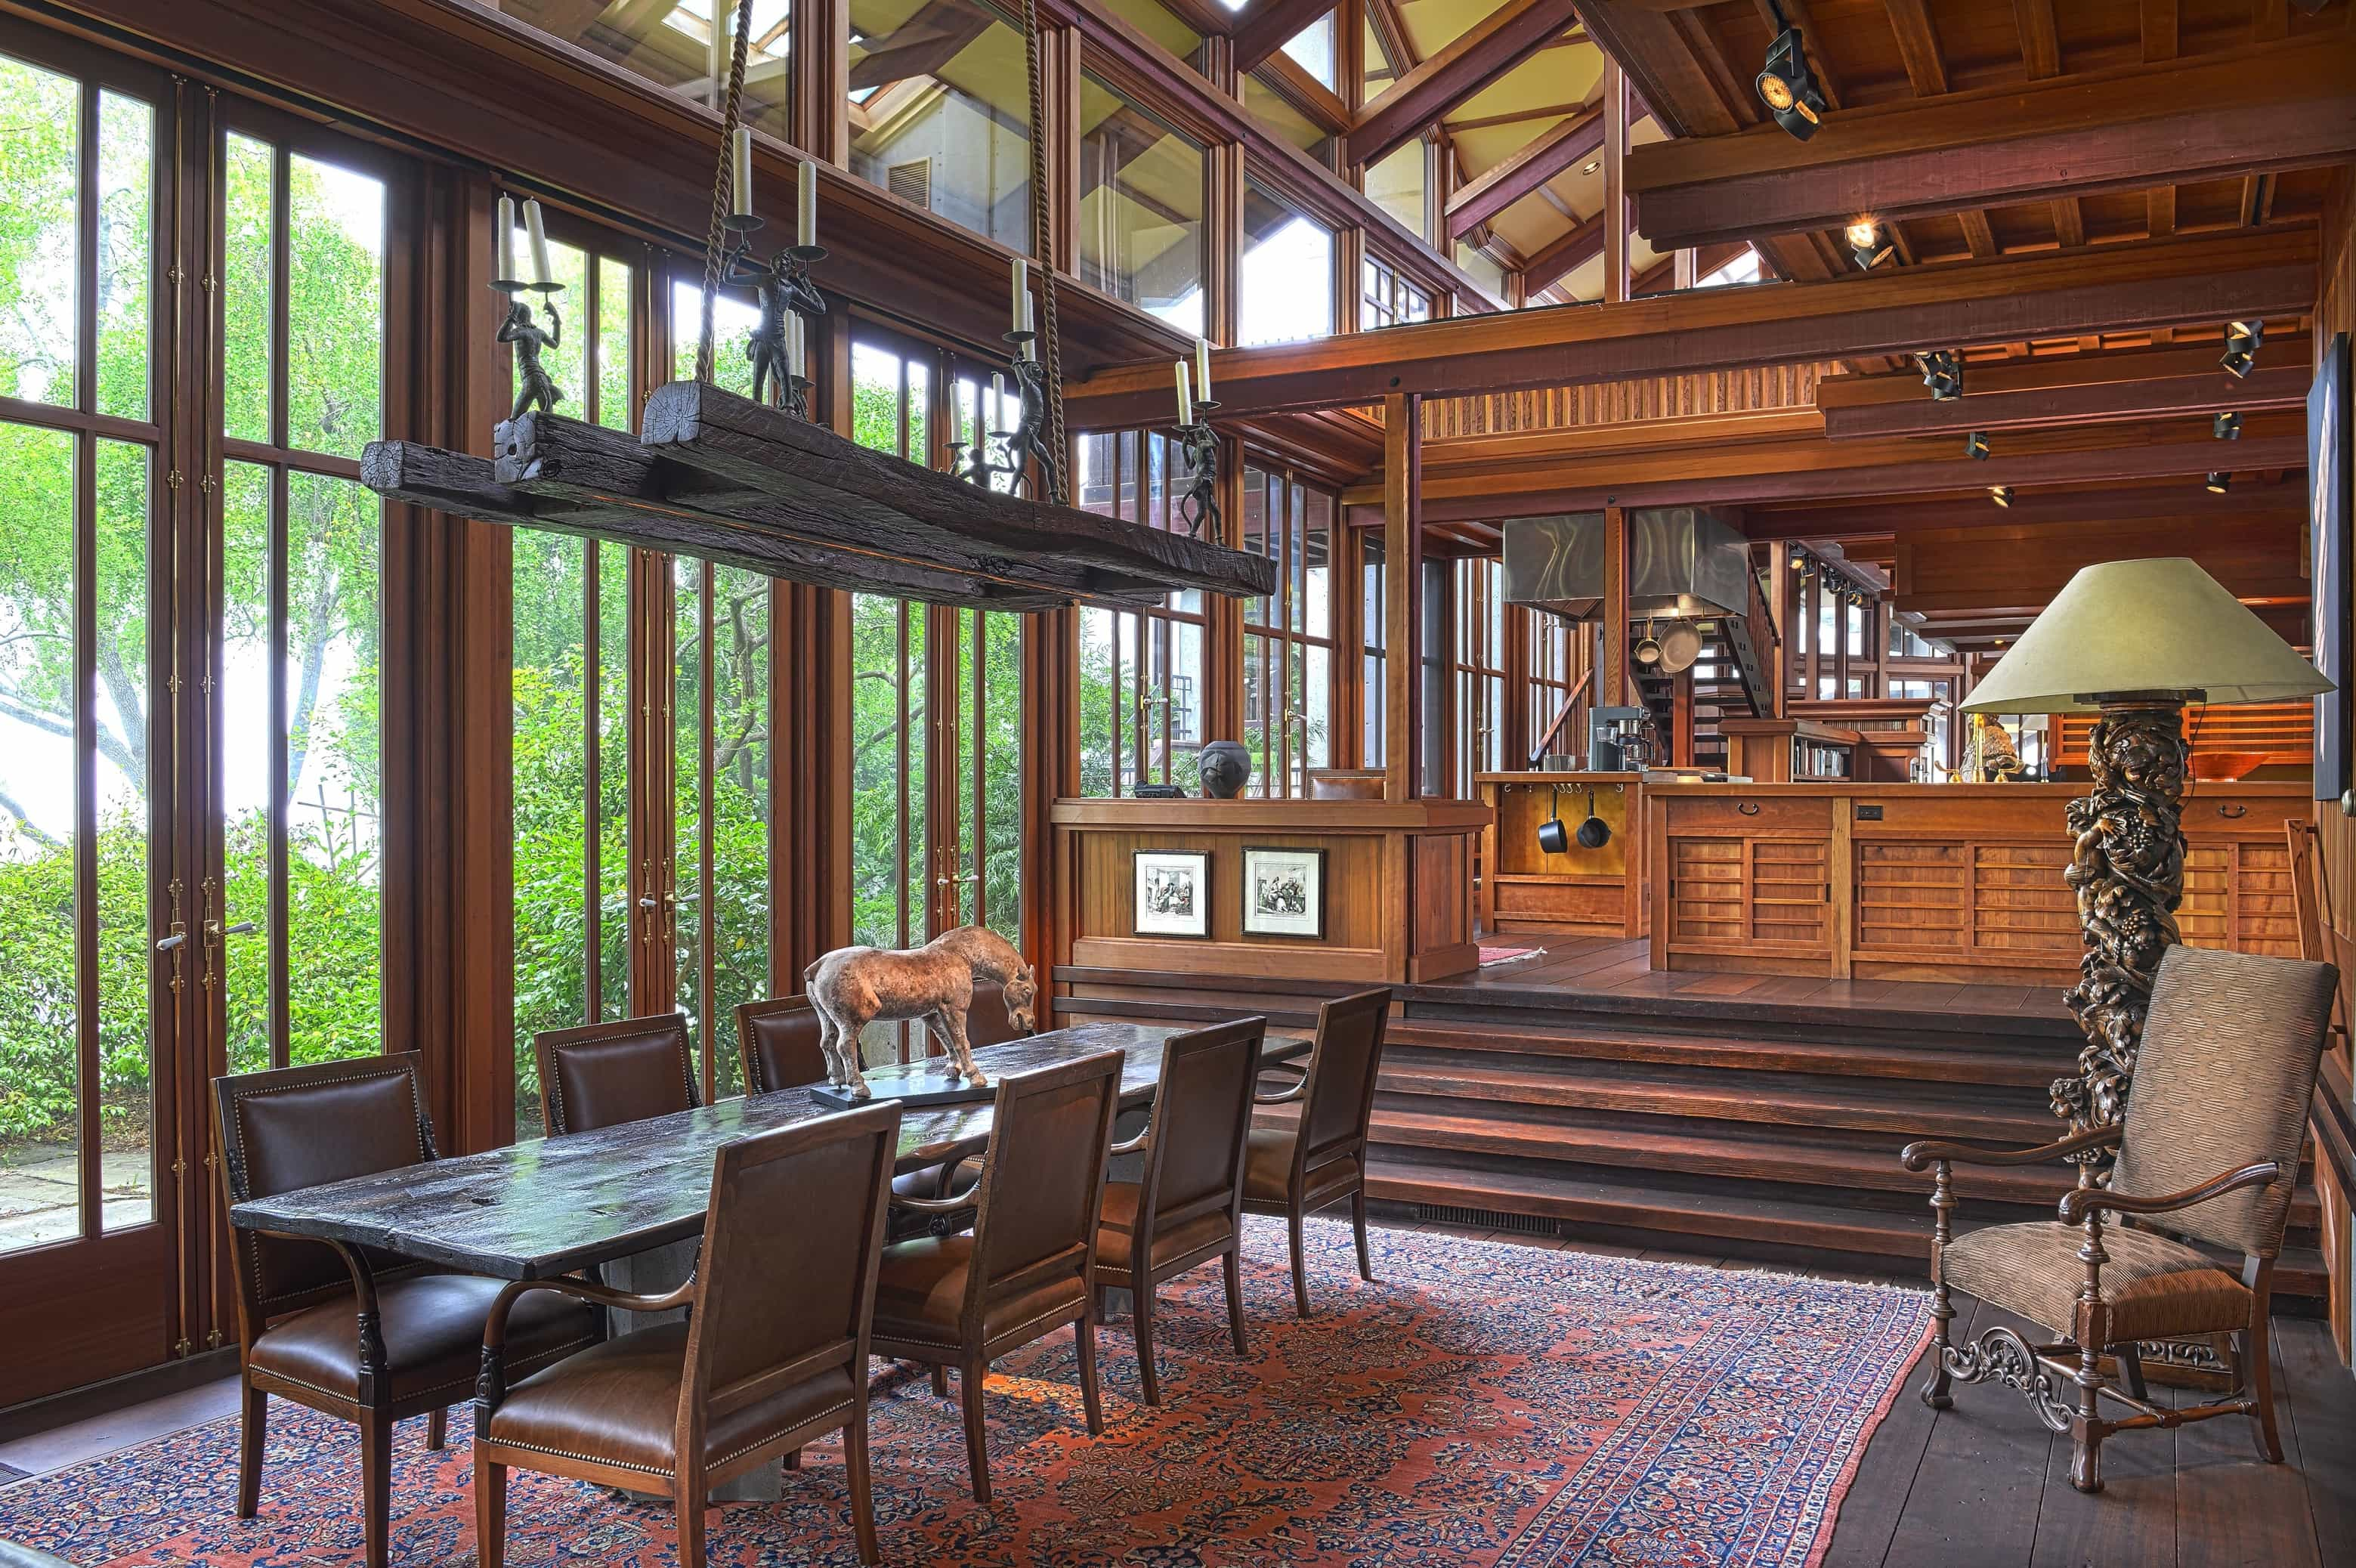 Featured Image of Vintage Open Dining Room With Detailed Woodcraft